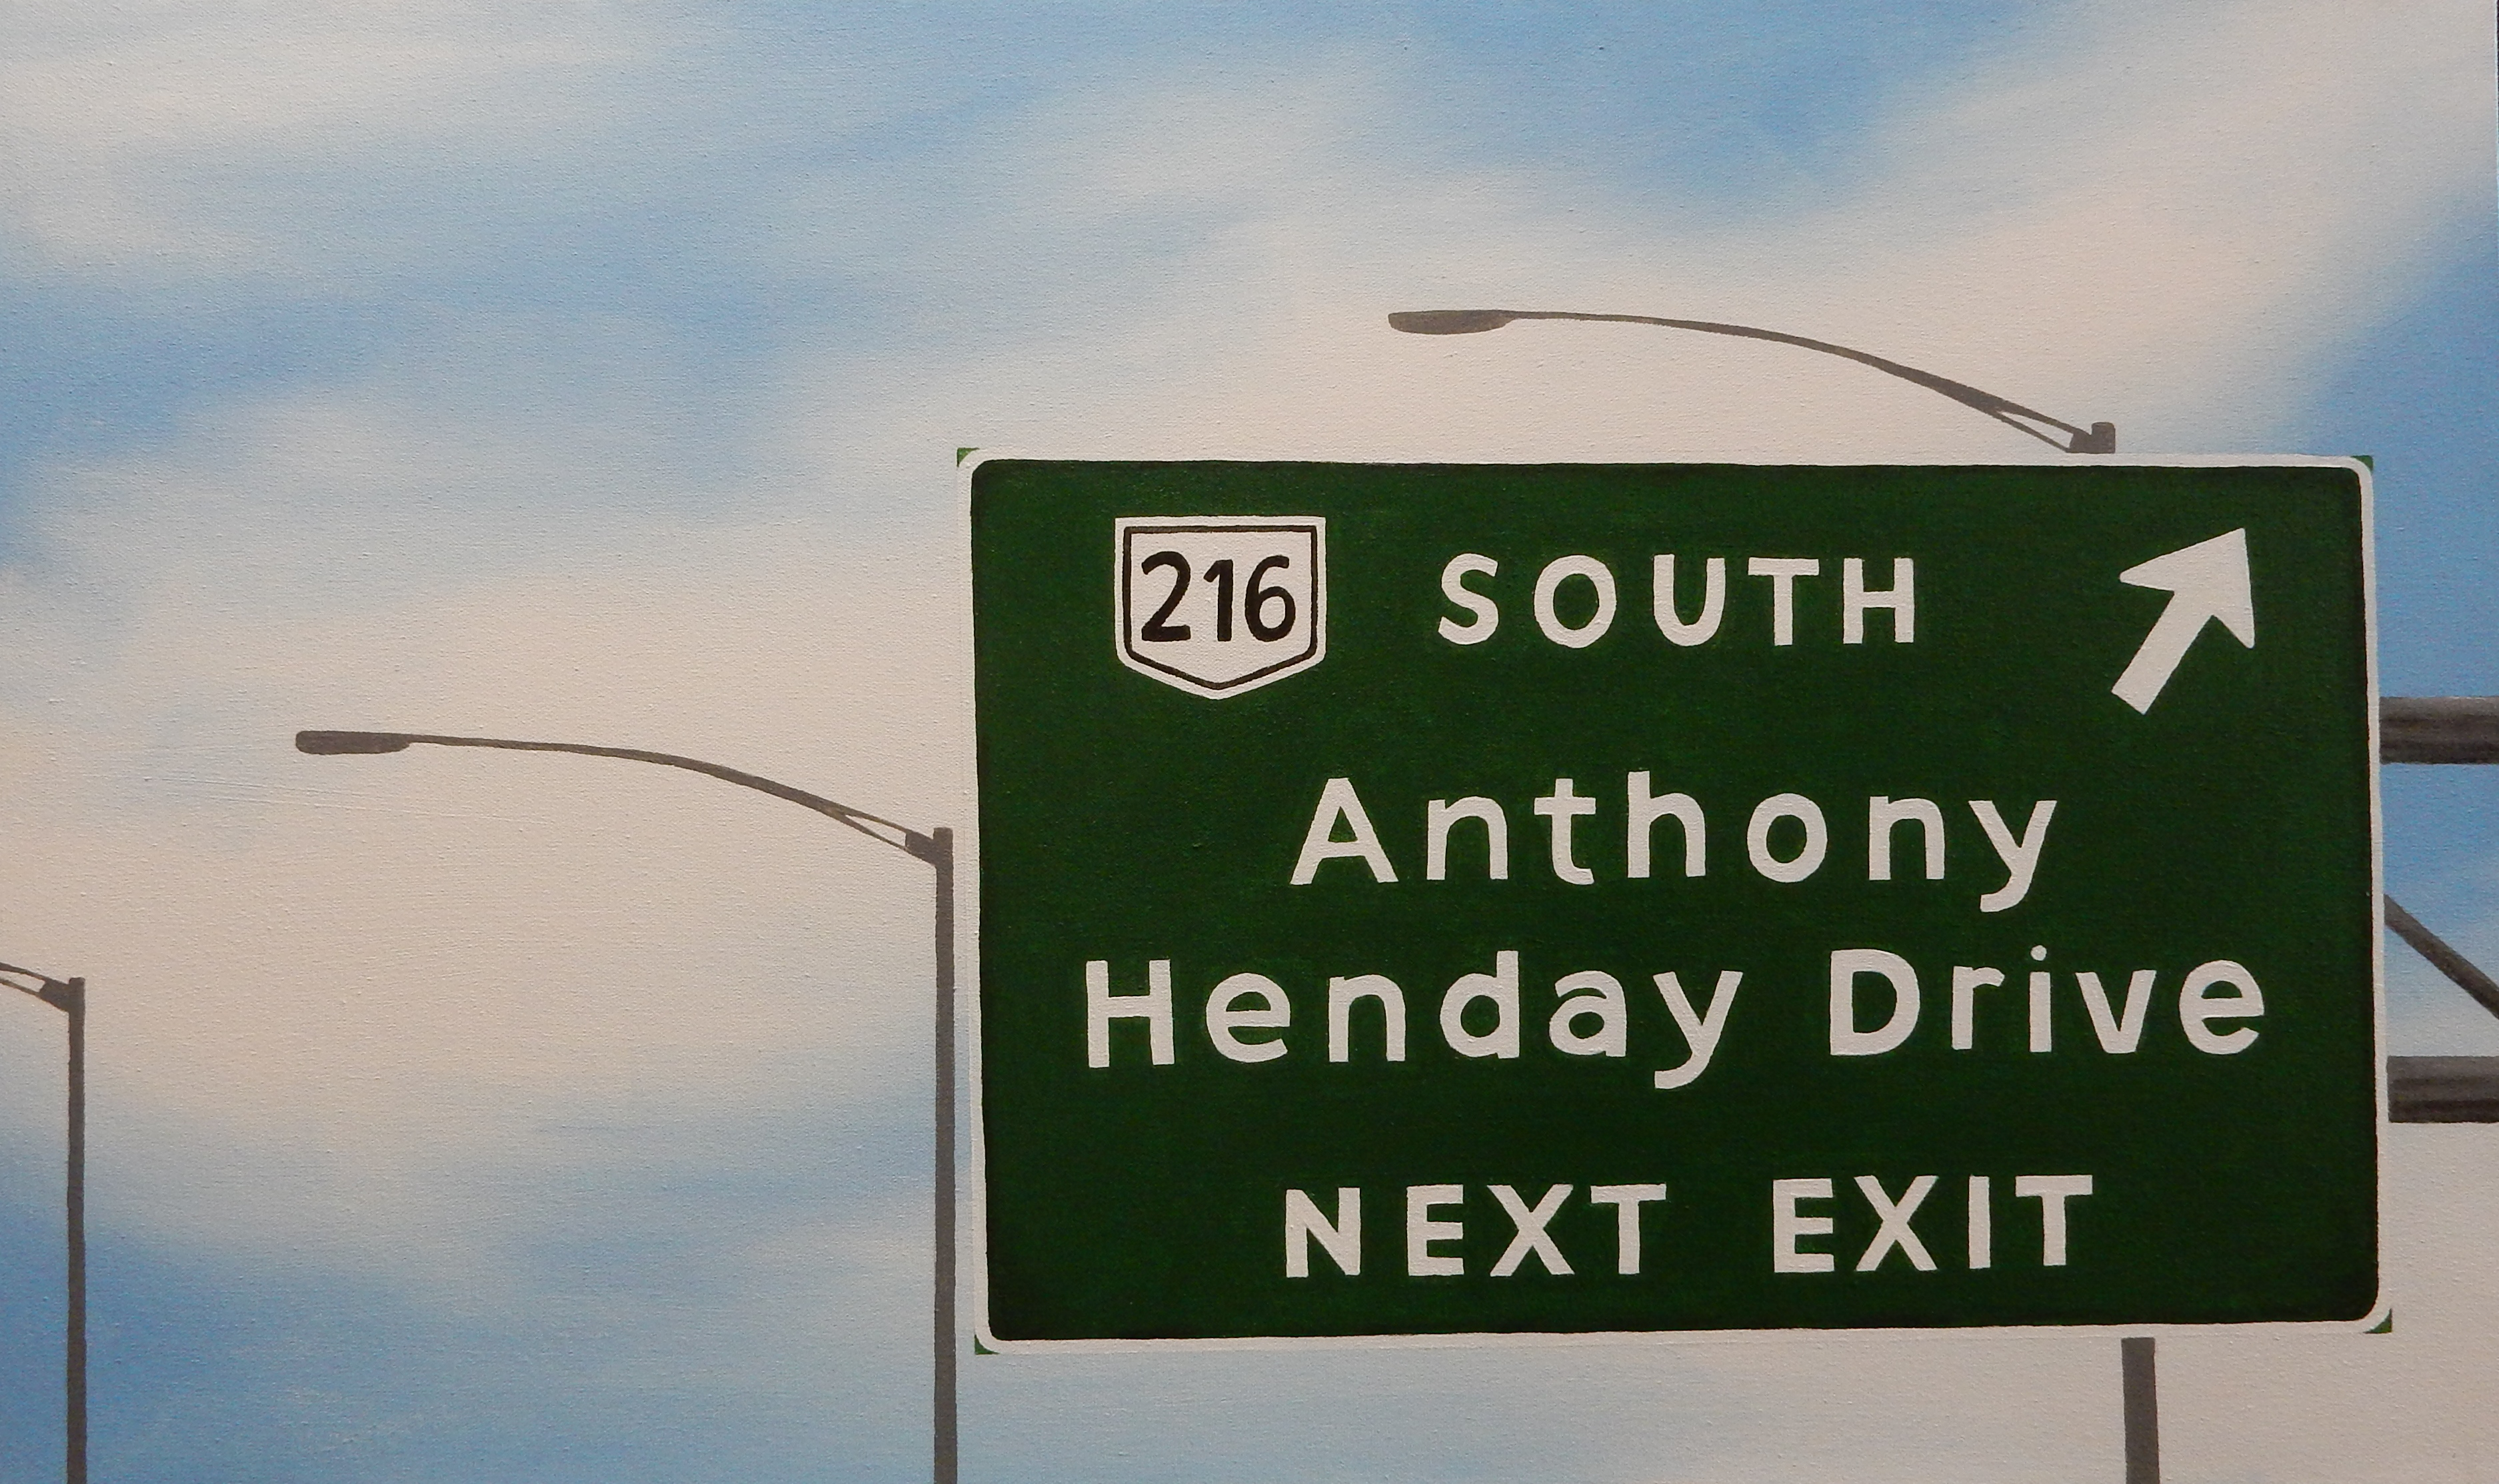 South Anthony Henday Drive